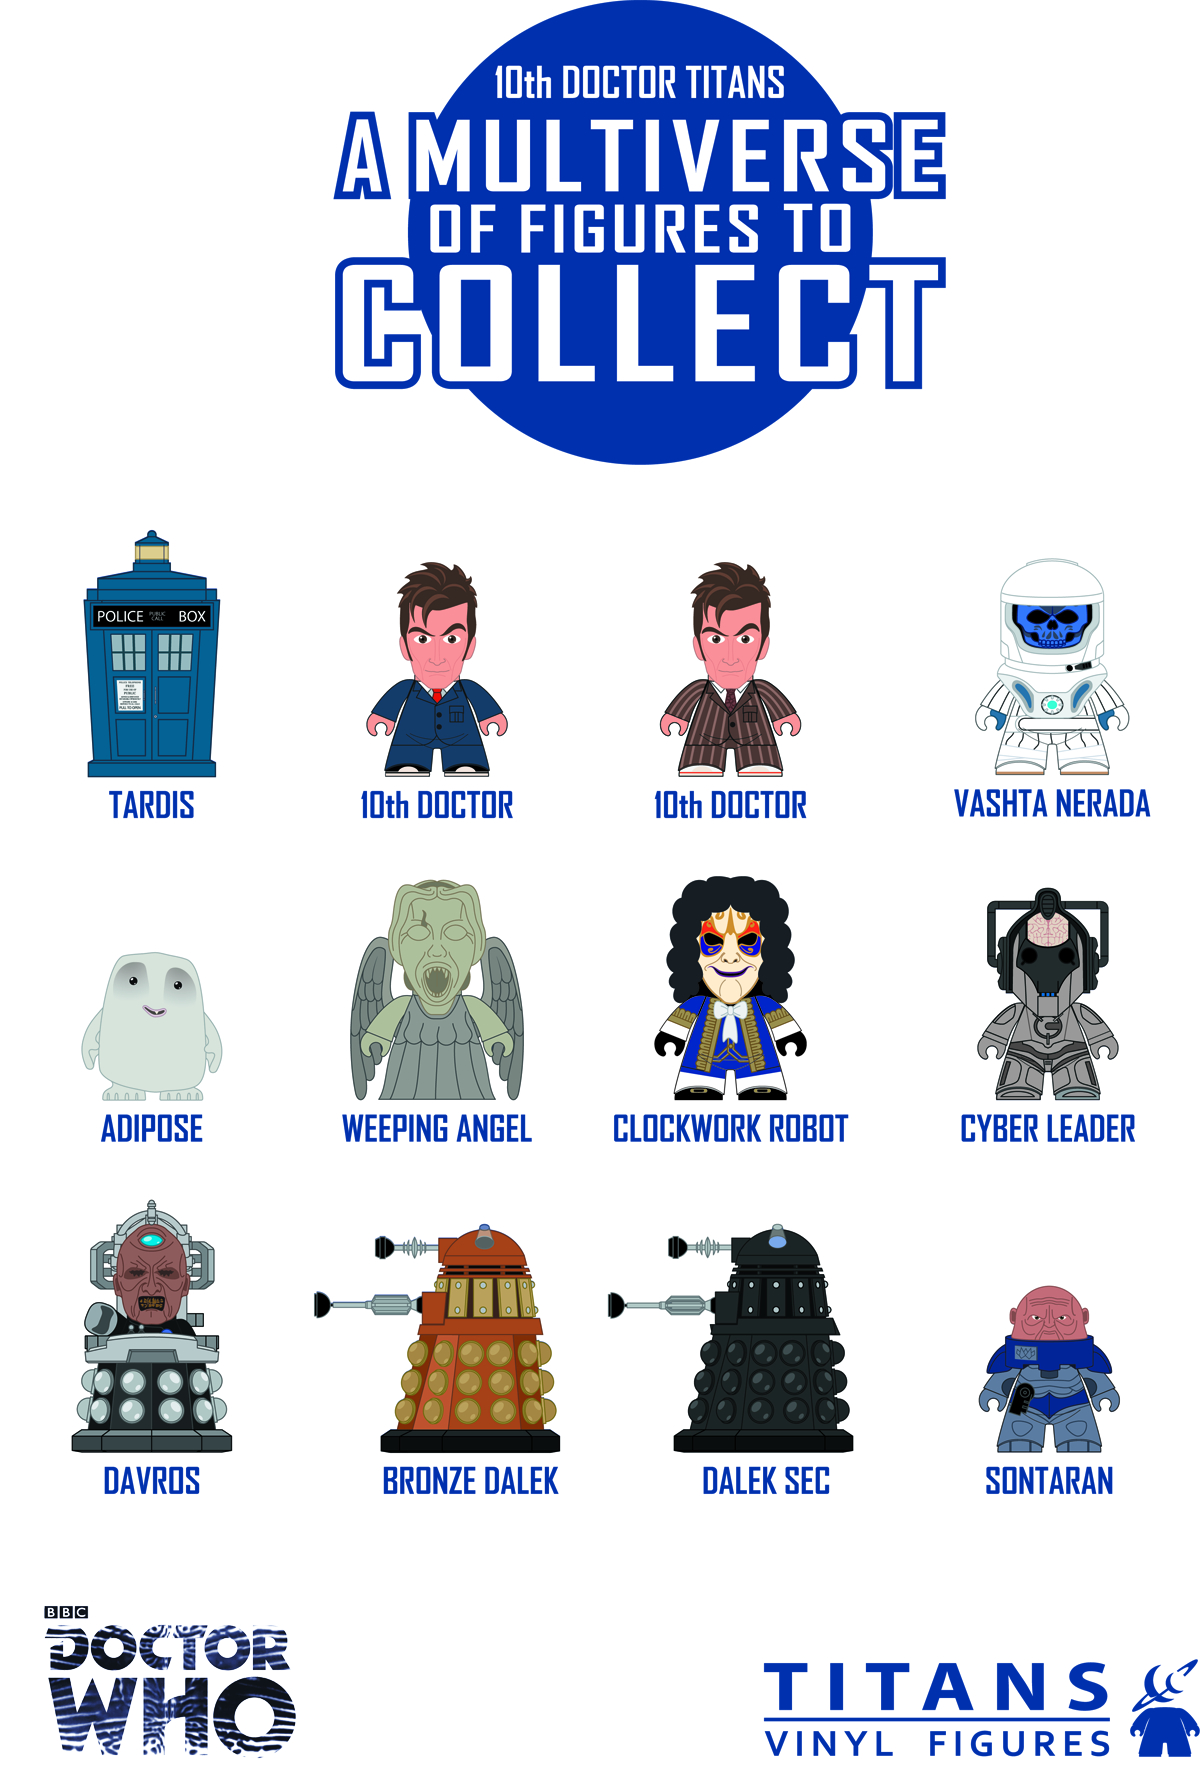 DOCTOR WHO TITANS MINI FIG 20PC BMB DS SER 02